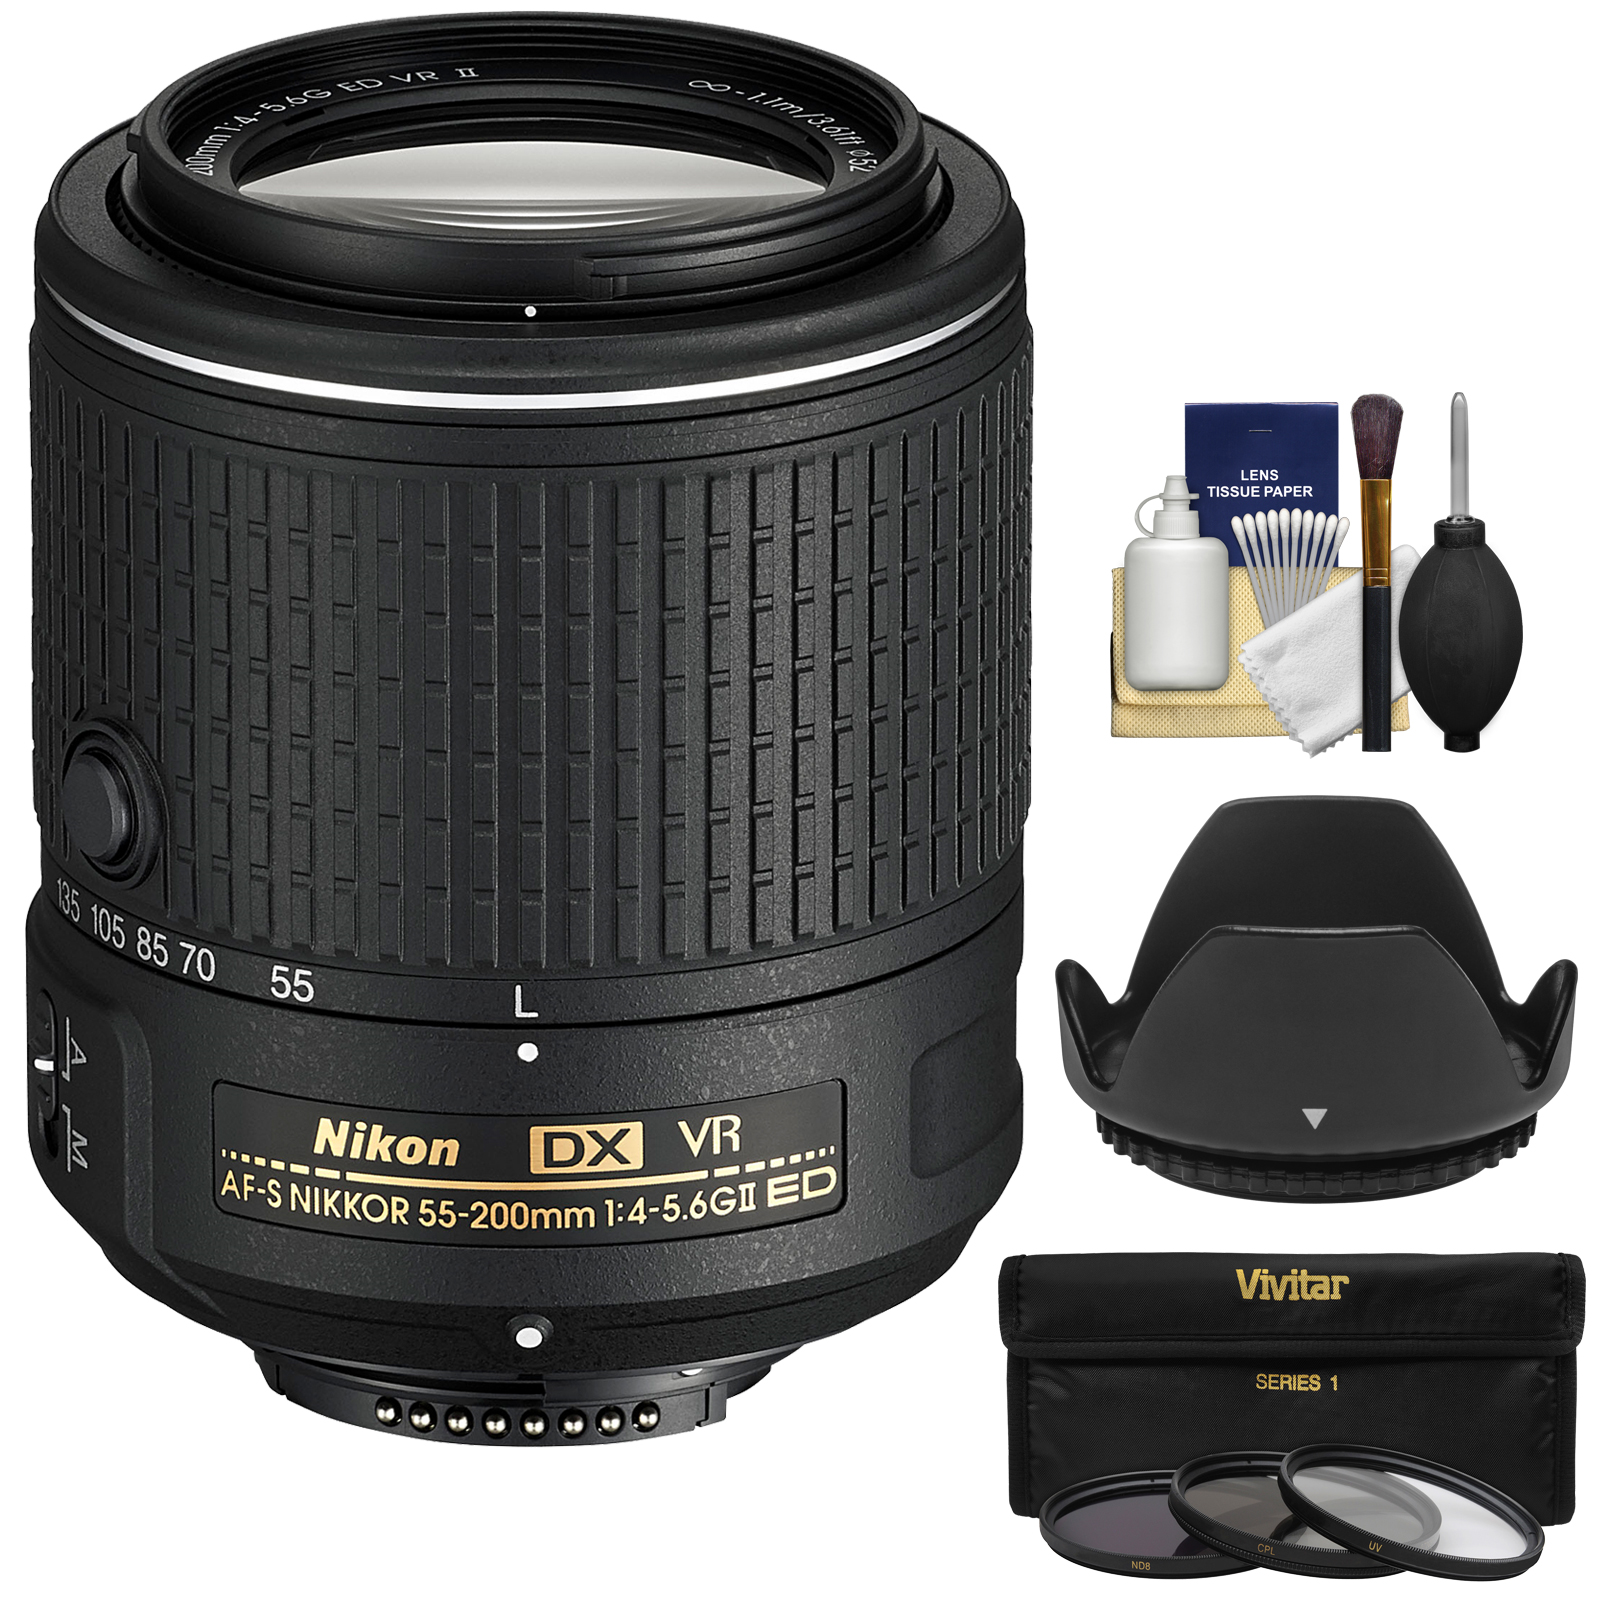 Nikon 55-200mm f/4-5.6G VR II DX AF-S ED Zoom-Nikkor Lens - Factory Refurbished with 3 UV/CPL/ND8 Filters + Hood + Kit